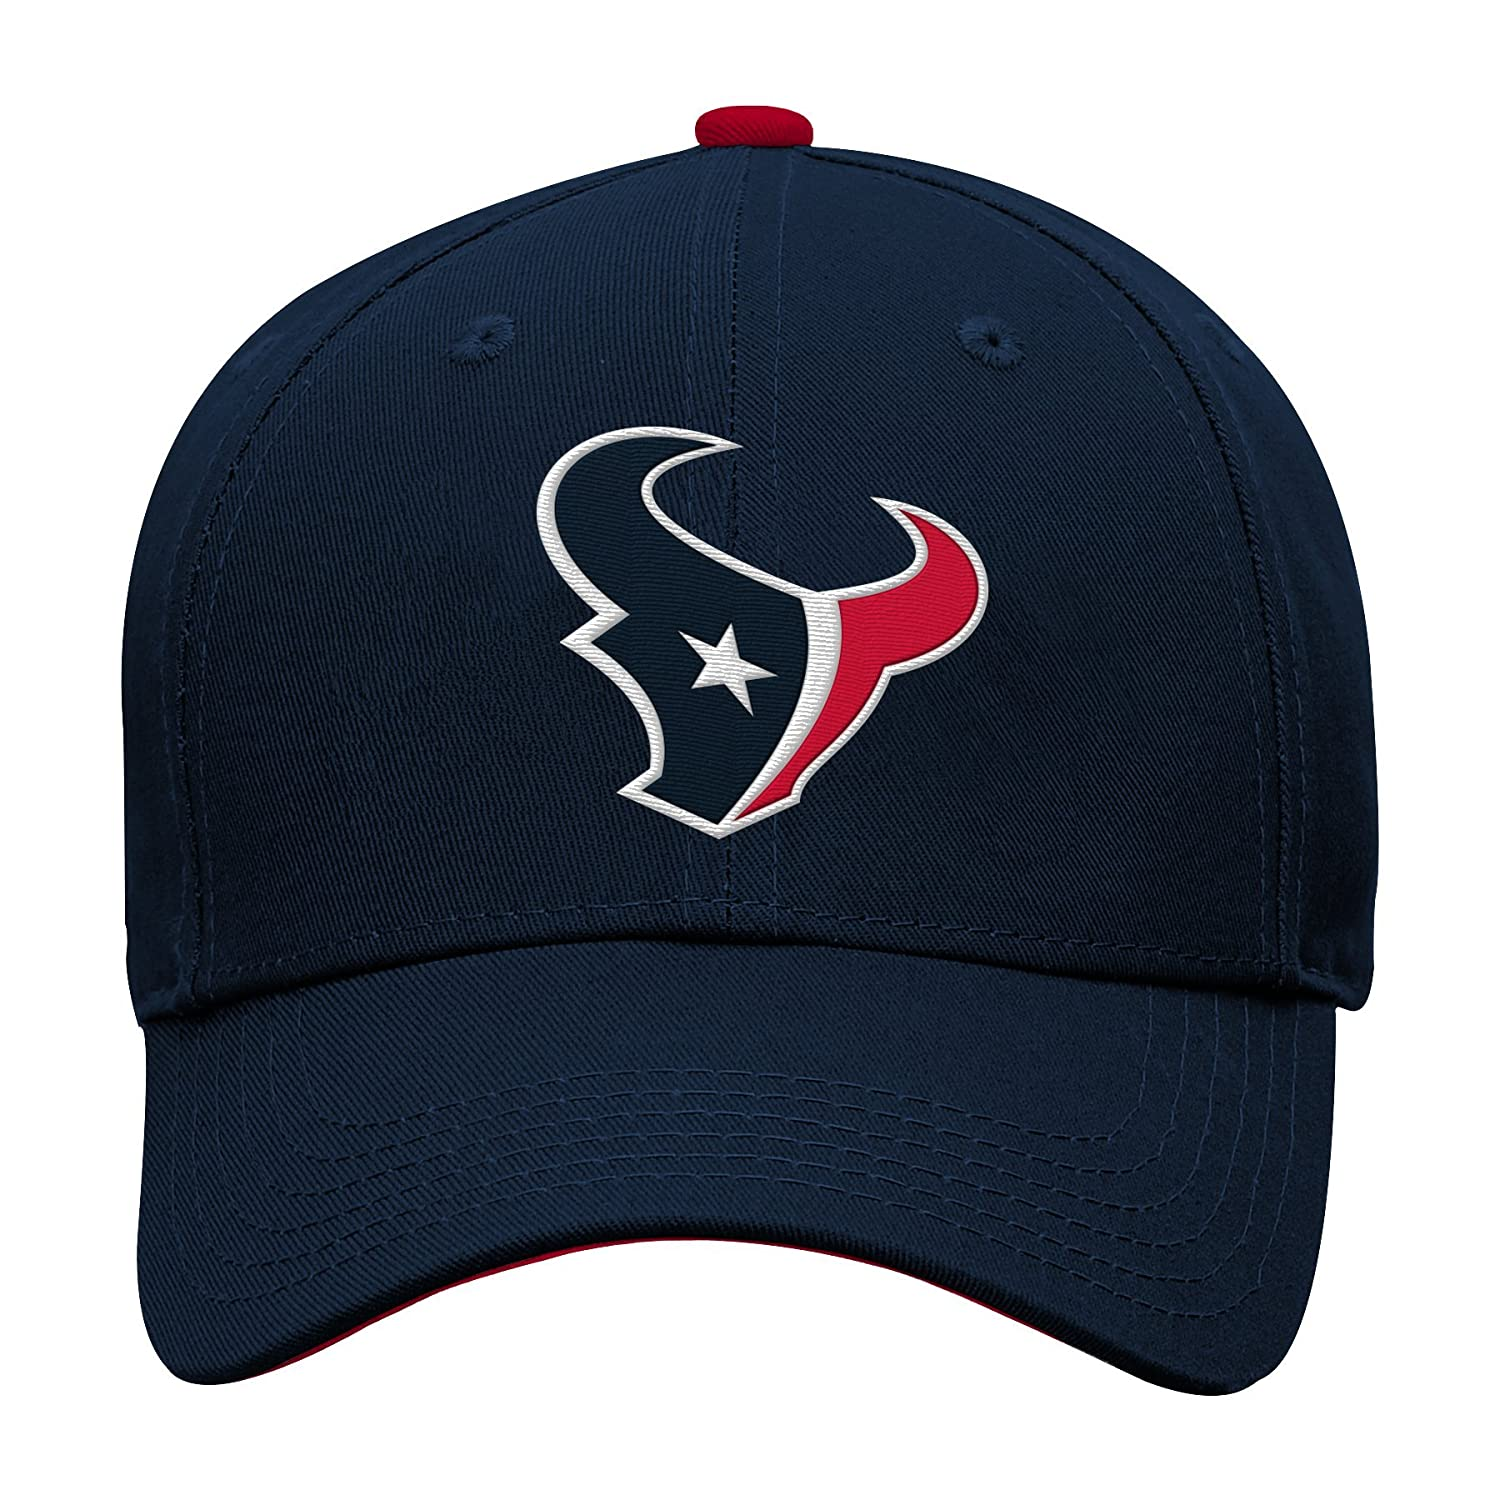 Outerstuff NFL Boys Kids /& Youth Boys Structured Adjustable Hat Houston Texans